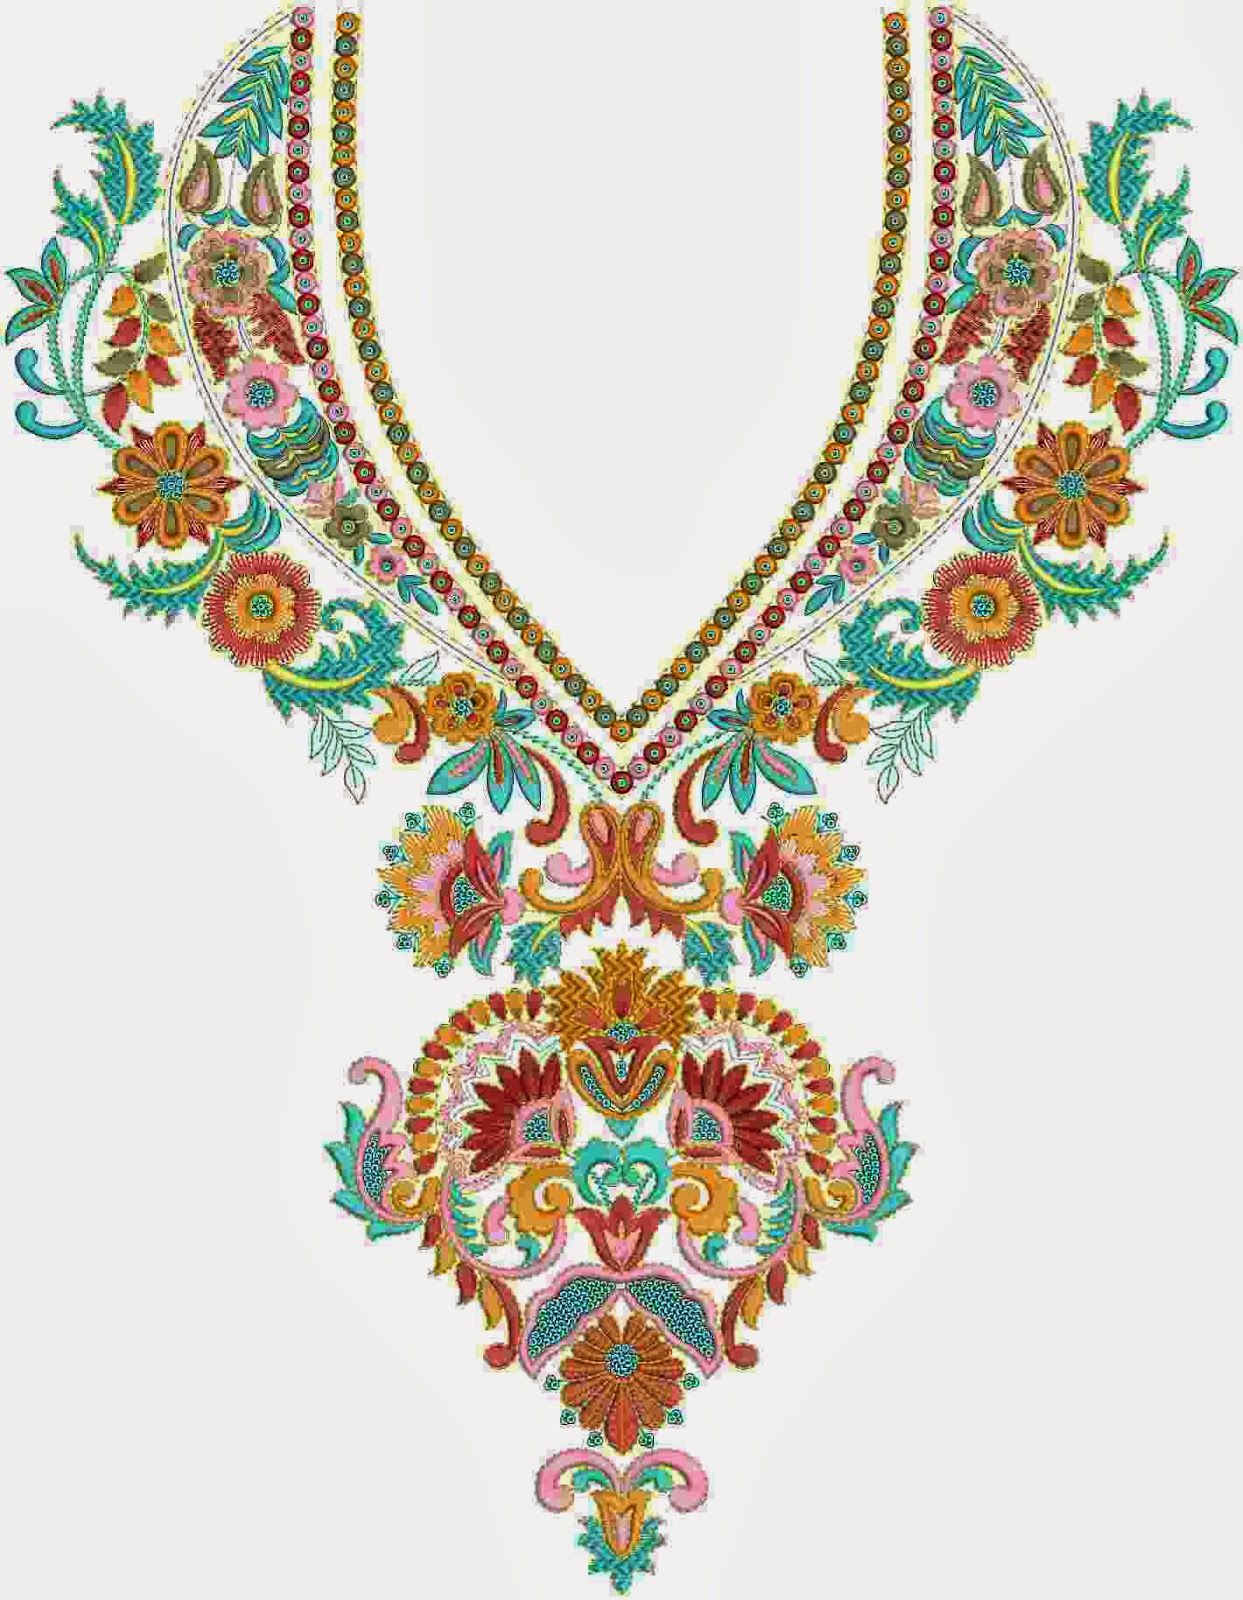 Pin by noelni on embroidery designs pinterest embroidery